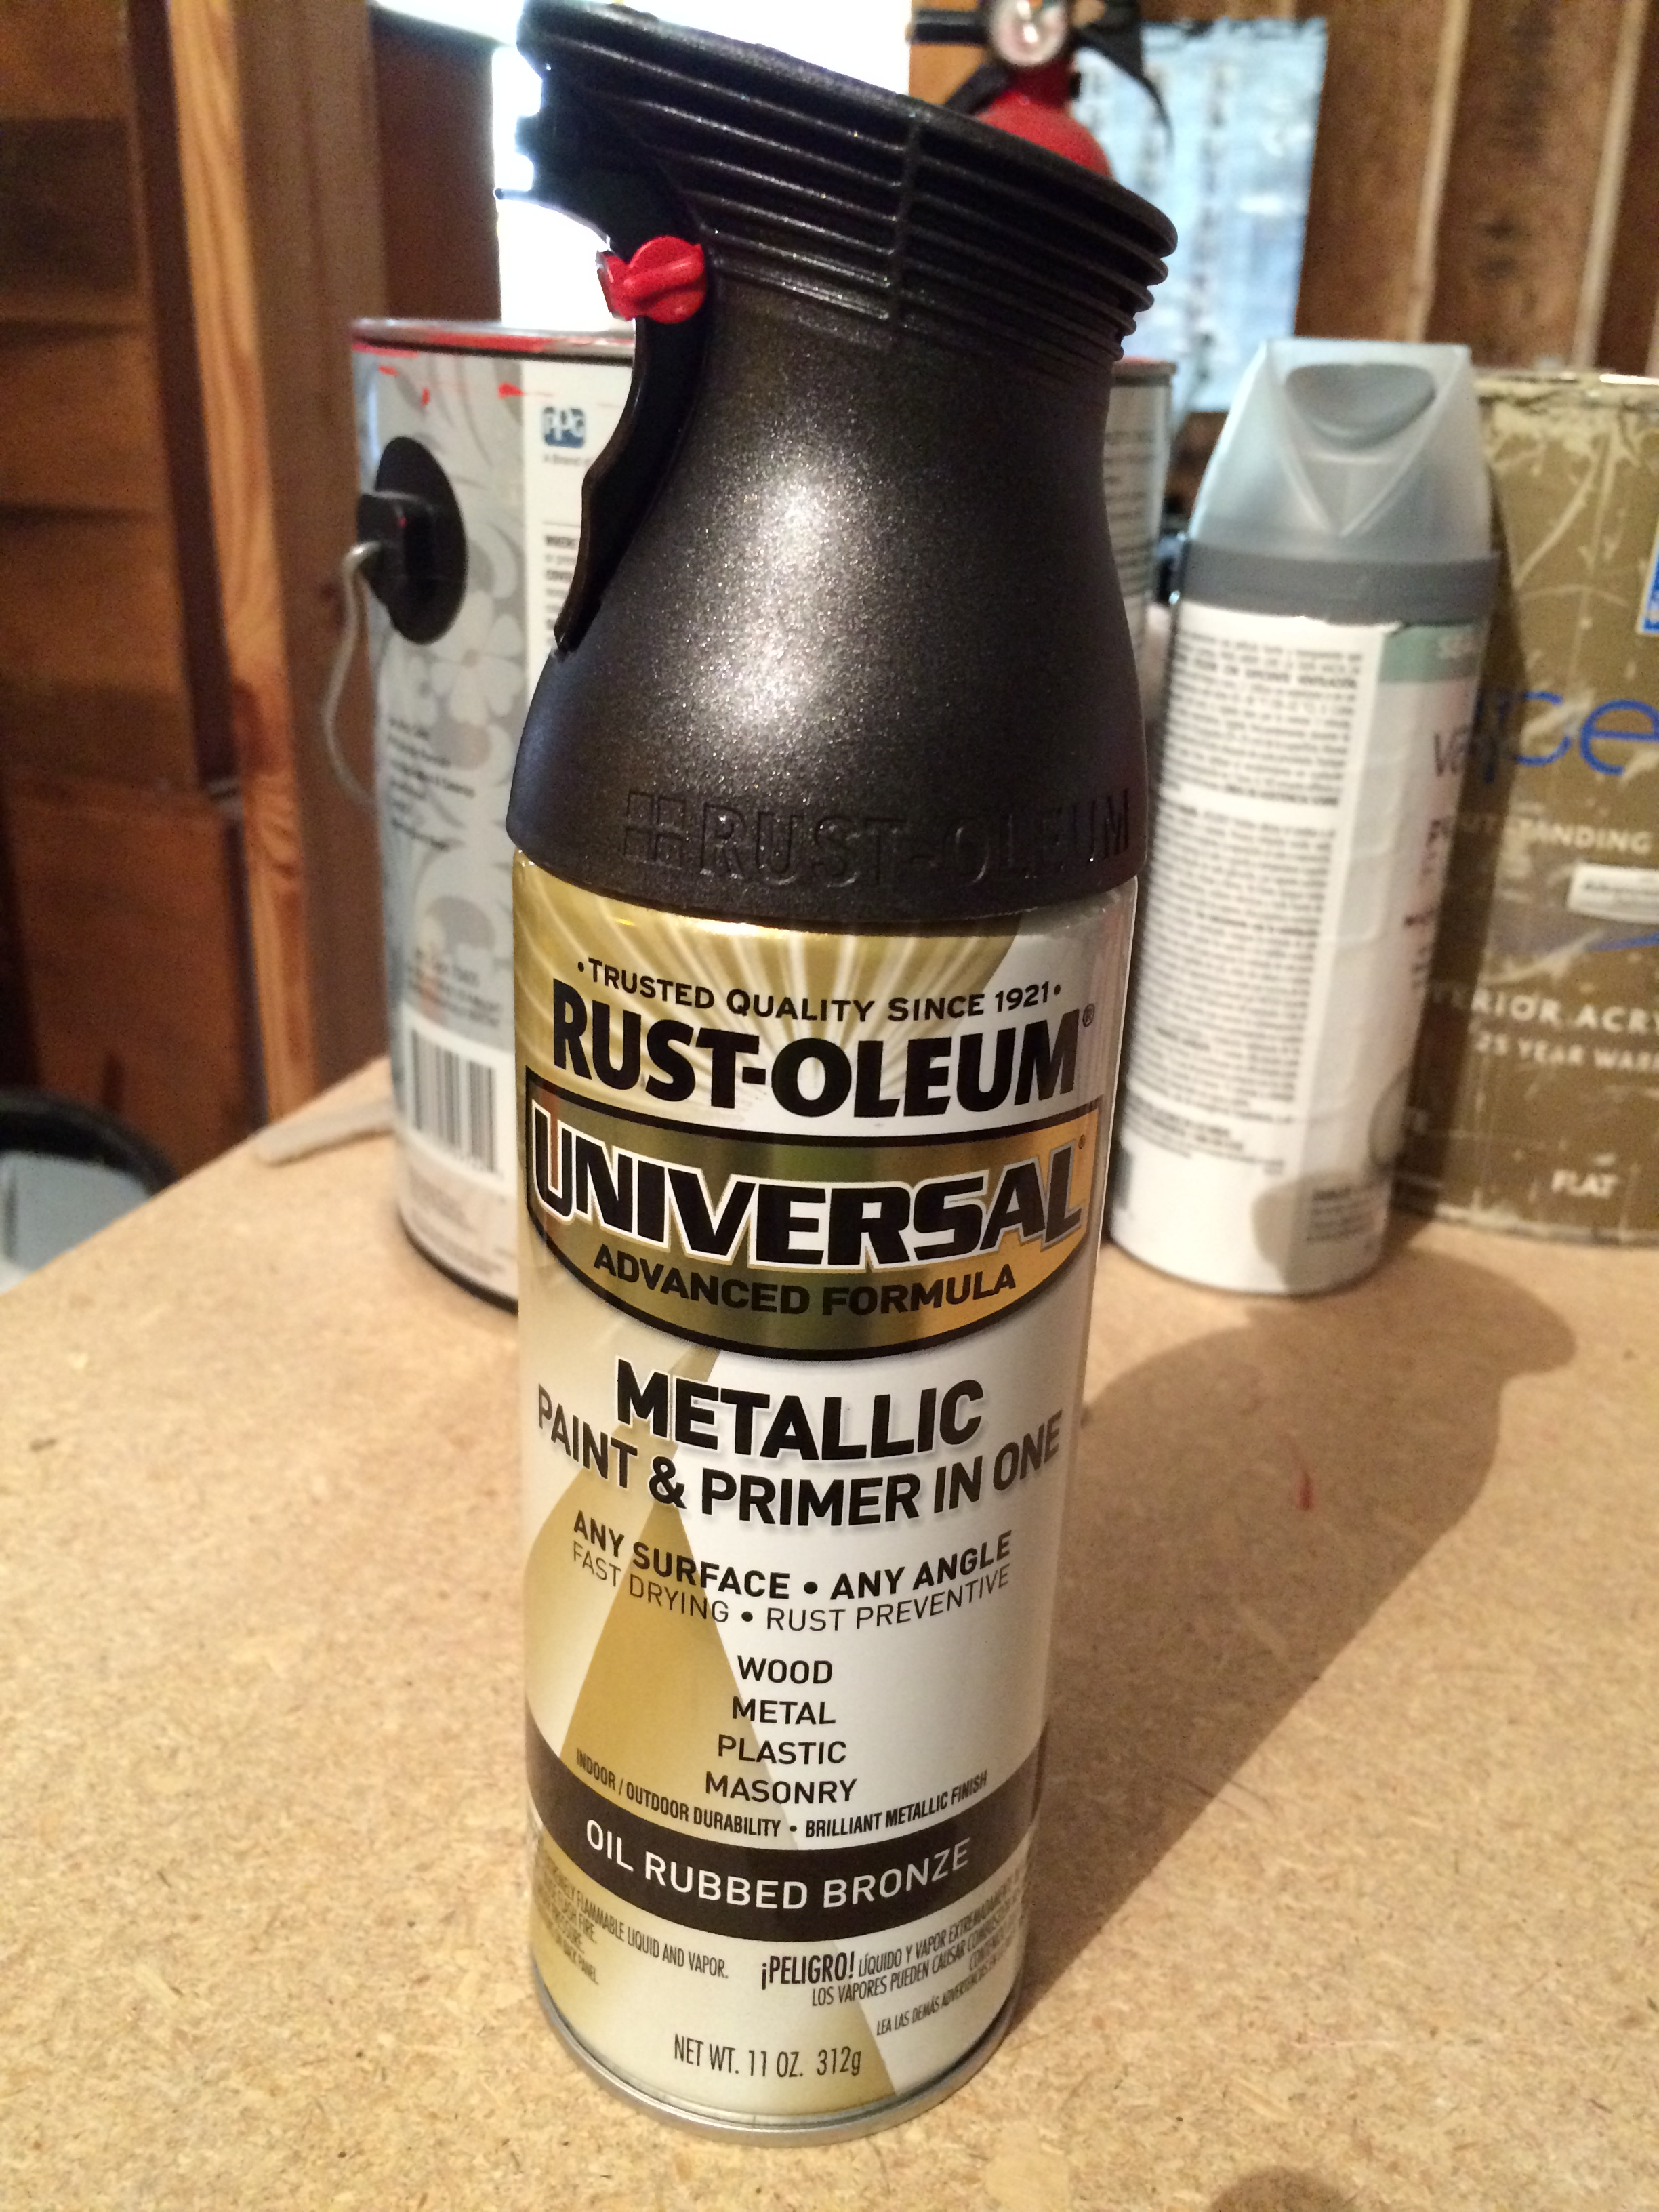 Oil rubbed bronze spray paint by Rustoleum